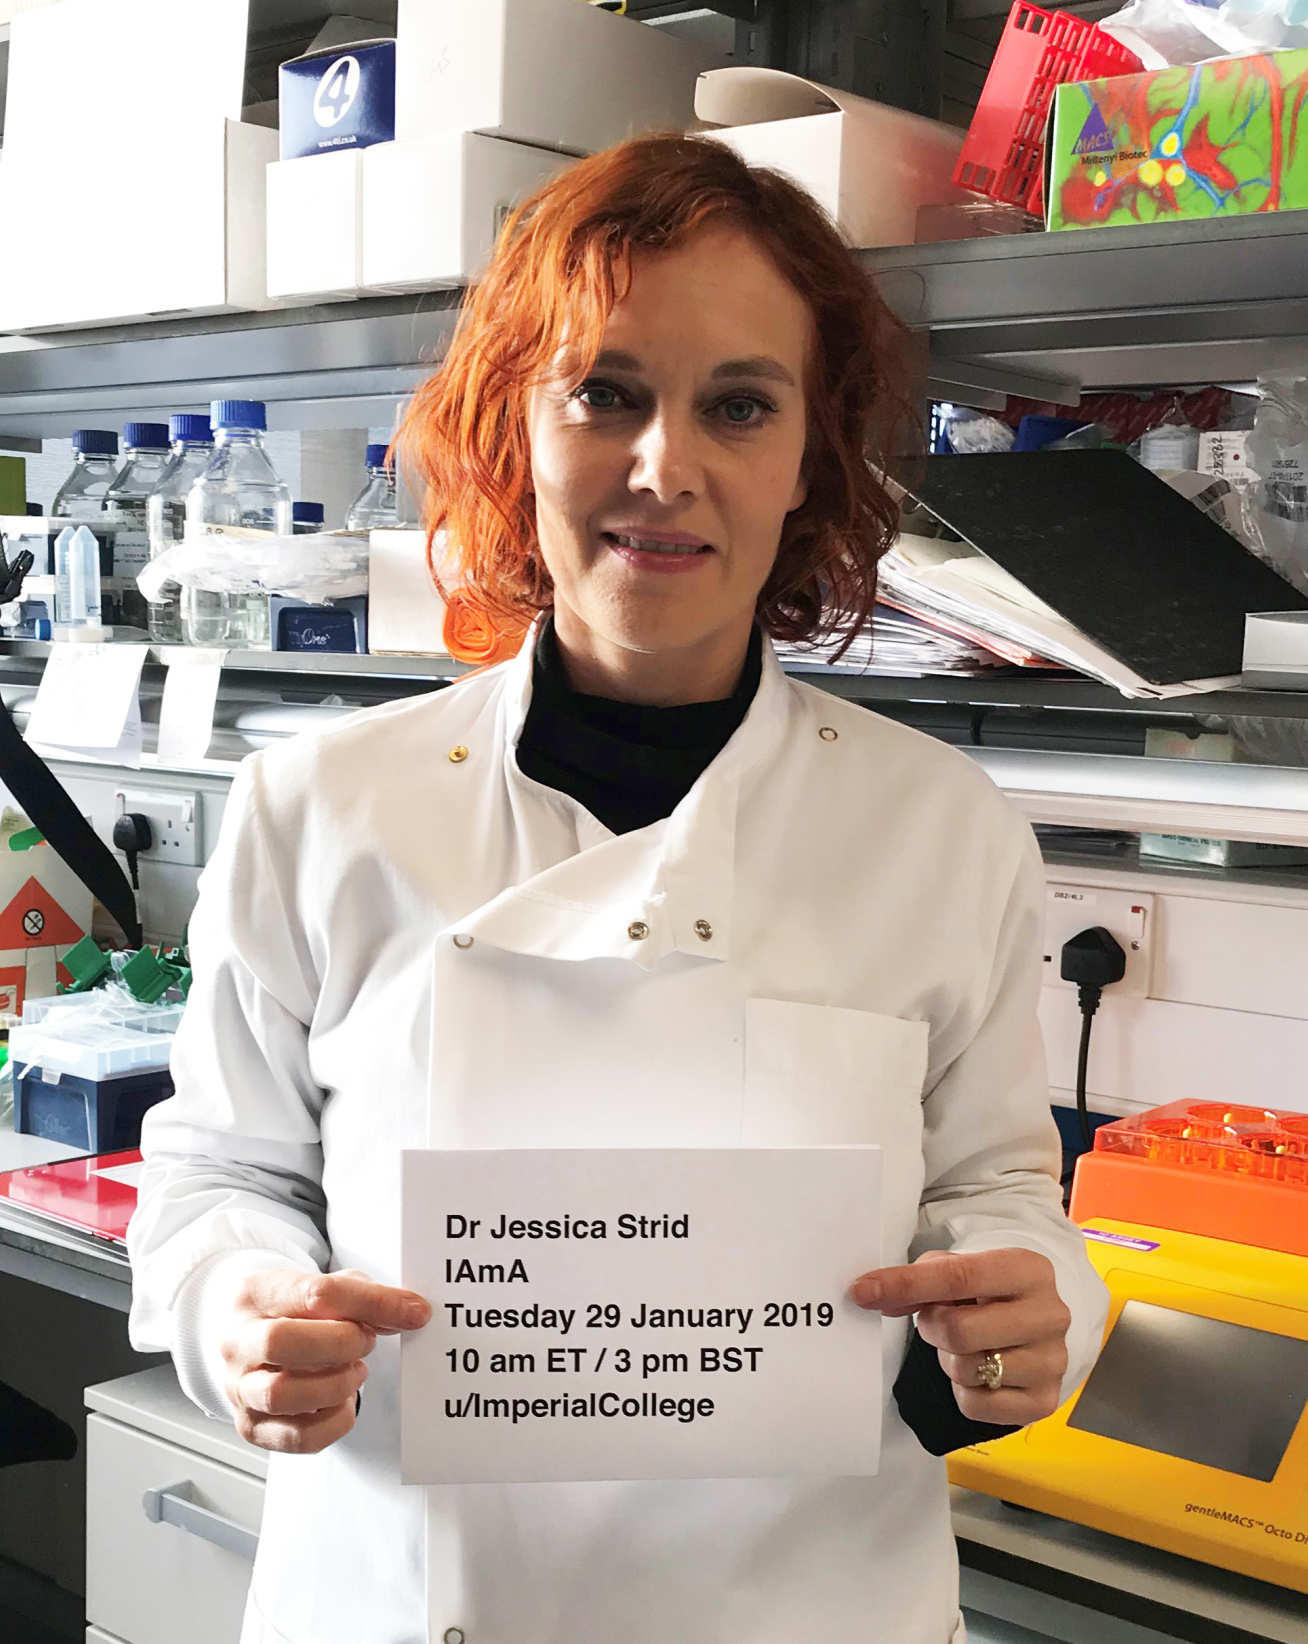 Dr Jessica Strid in a lab